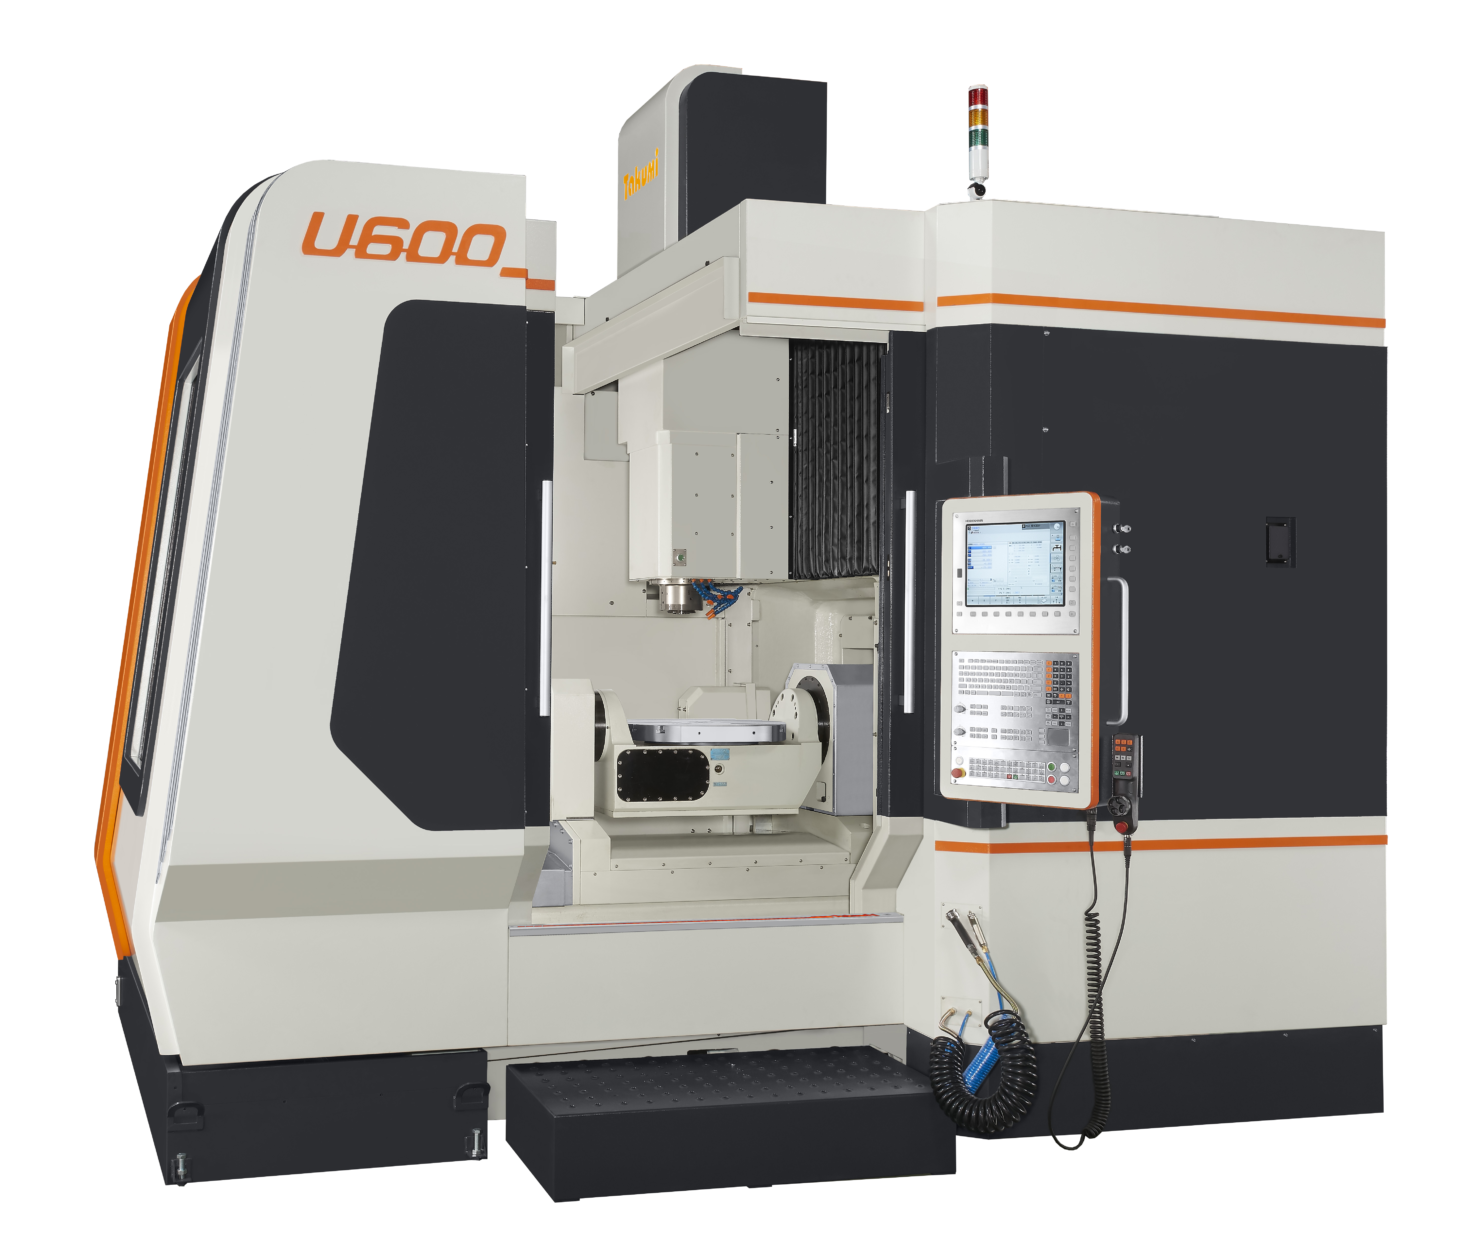 Takumi U 600: 5-axis Machining Center with Heidenhain control for Die & Mold.